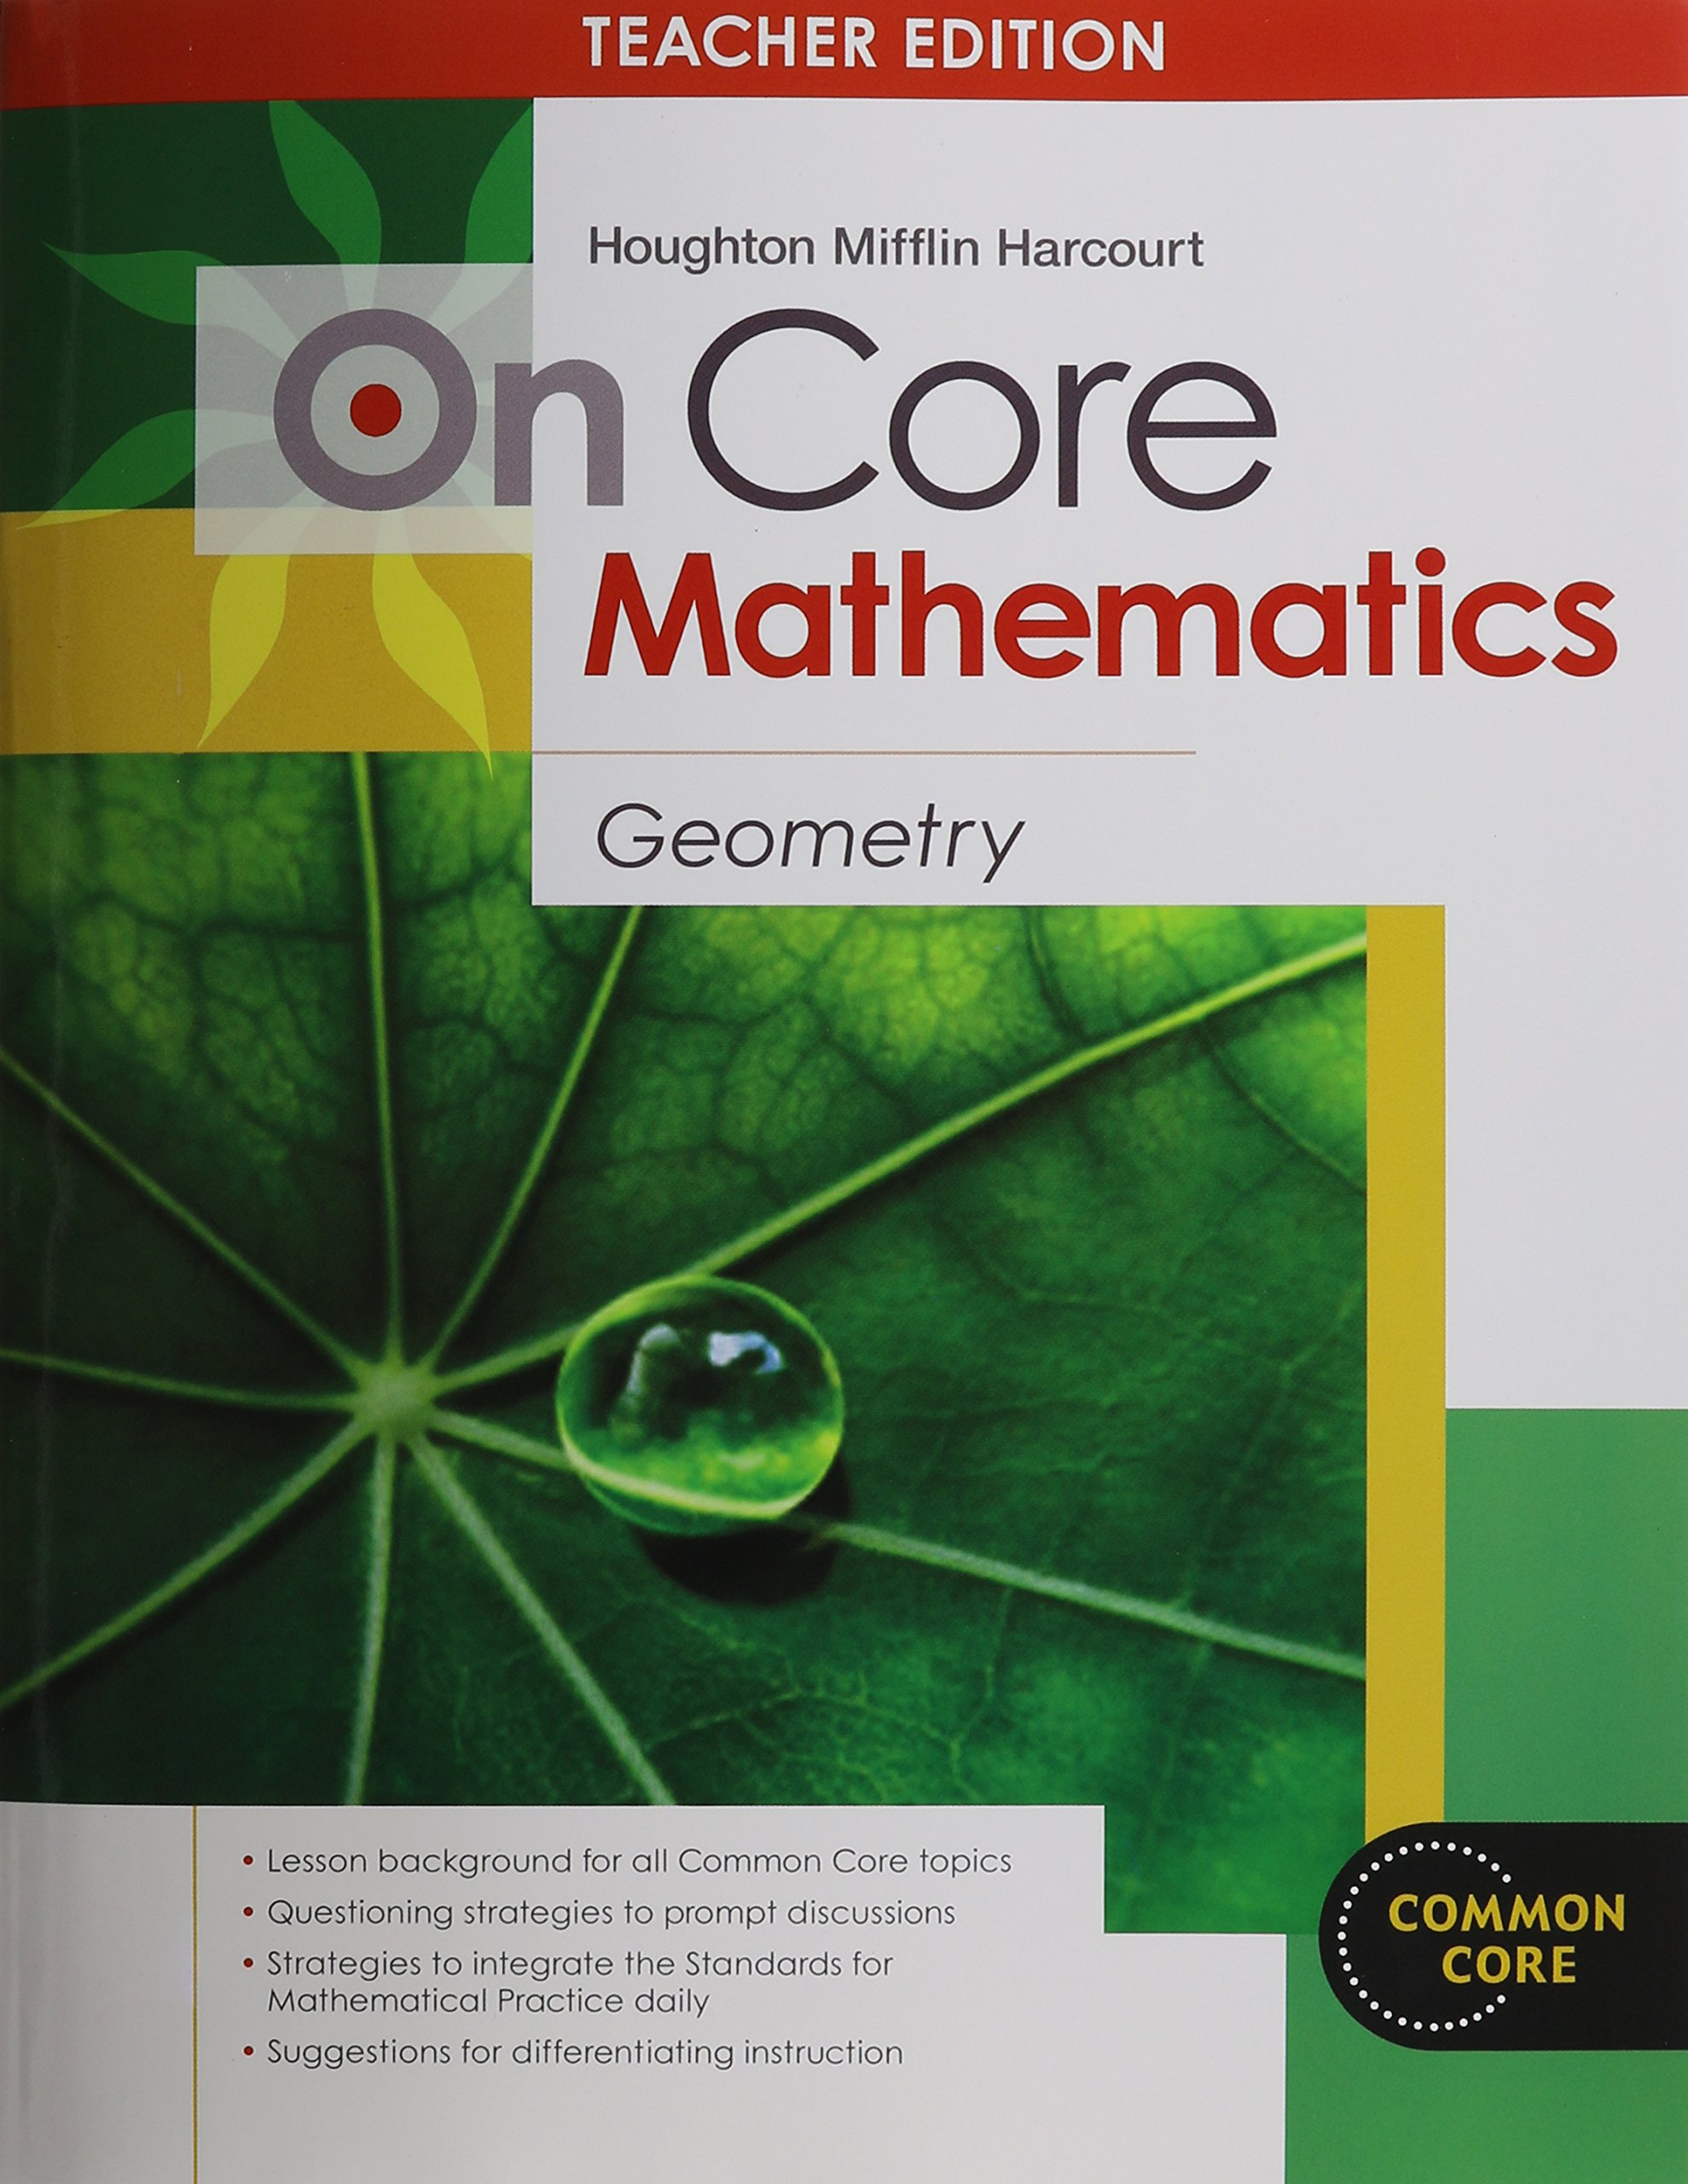 Houghton mifflin harcourt on core mathematics teachers guide houghton mifflin harcourt on core mathematics teachers guide geometry 2012 hoghton mifflin harcourt publishers 9780547617244 amazon books ccuart Gallery